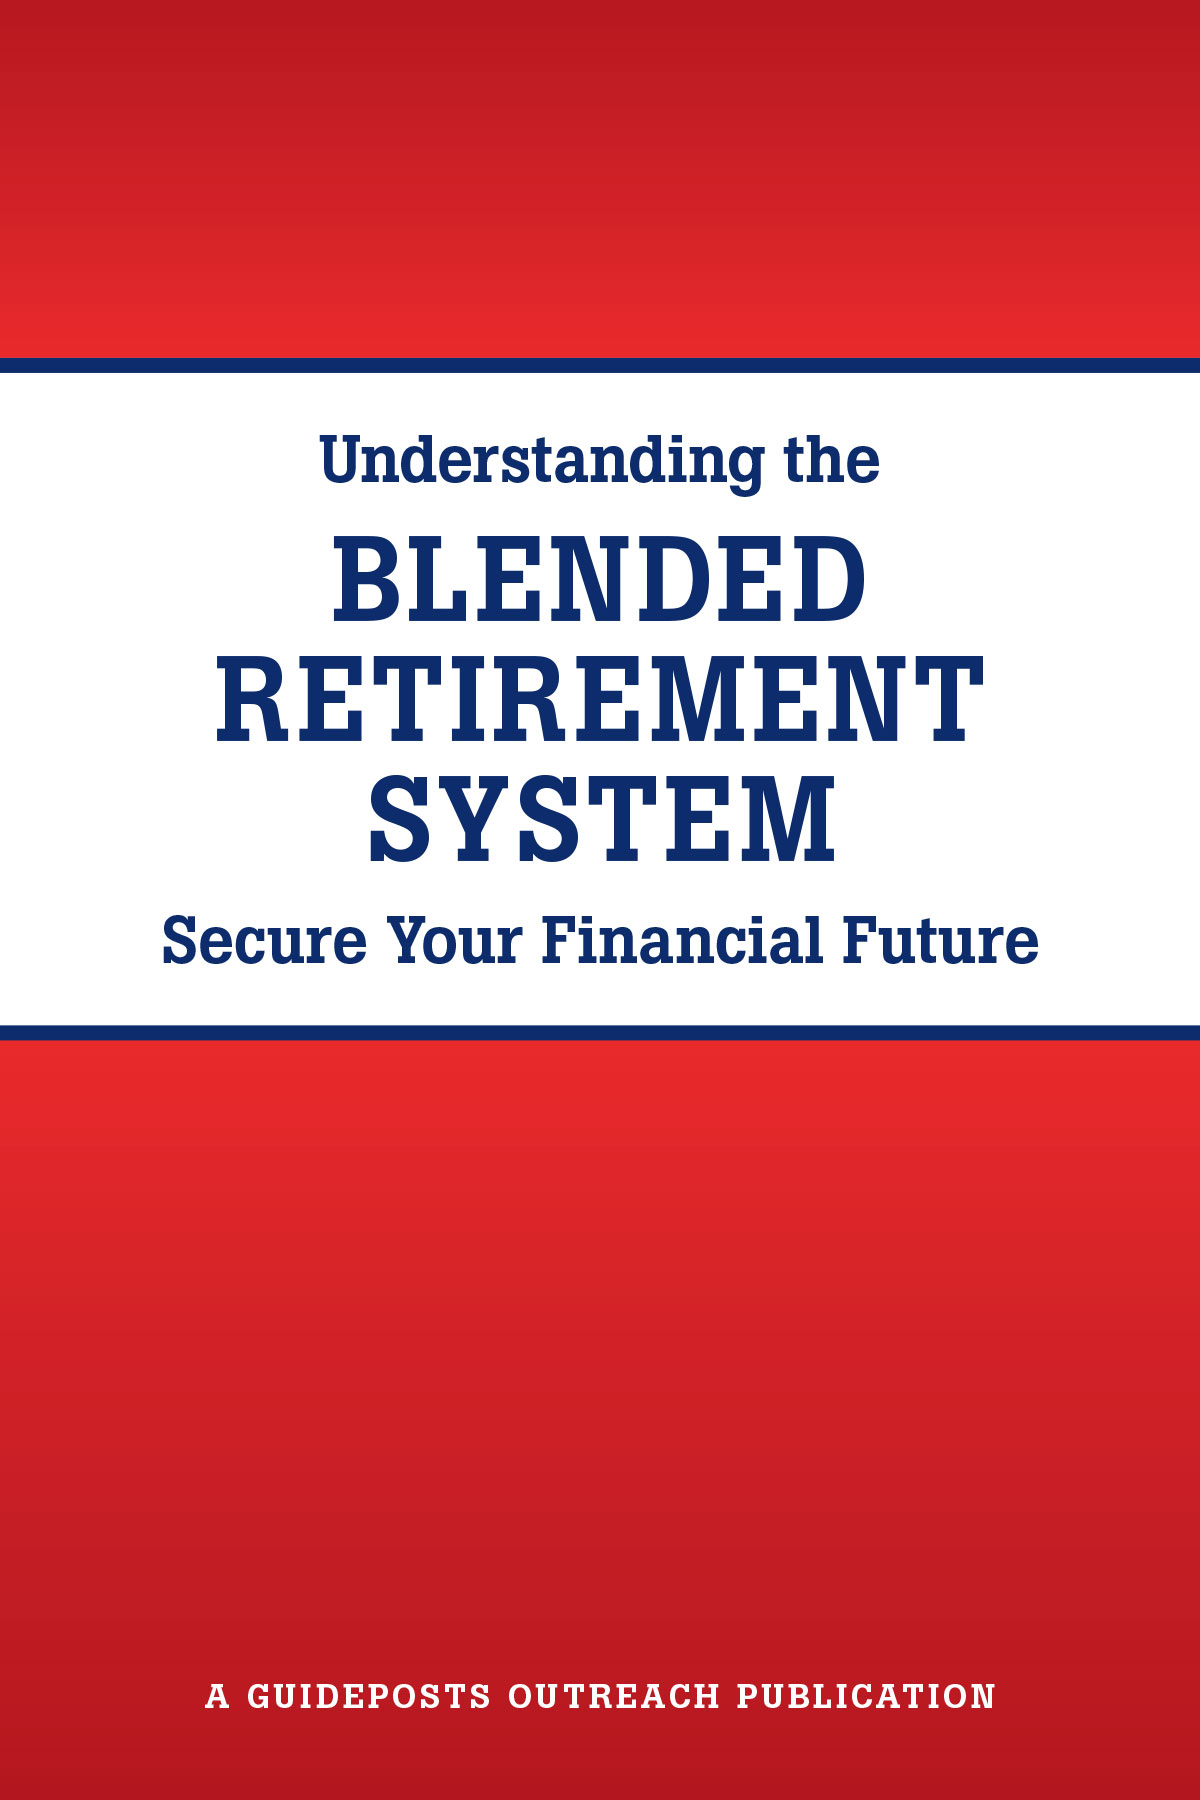 Understanding the Blended Retirement System